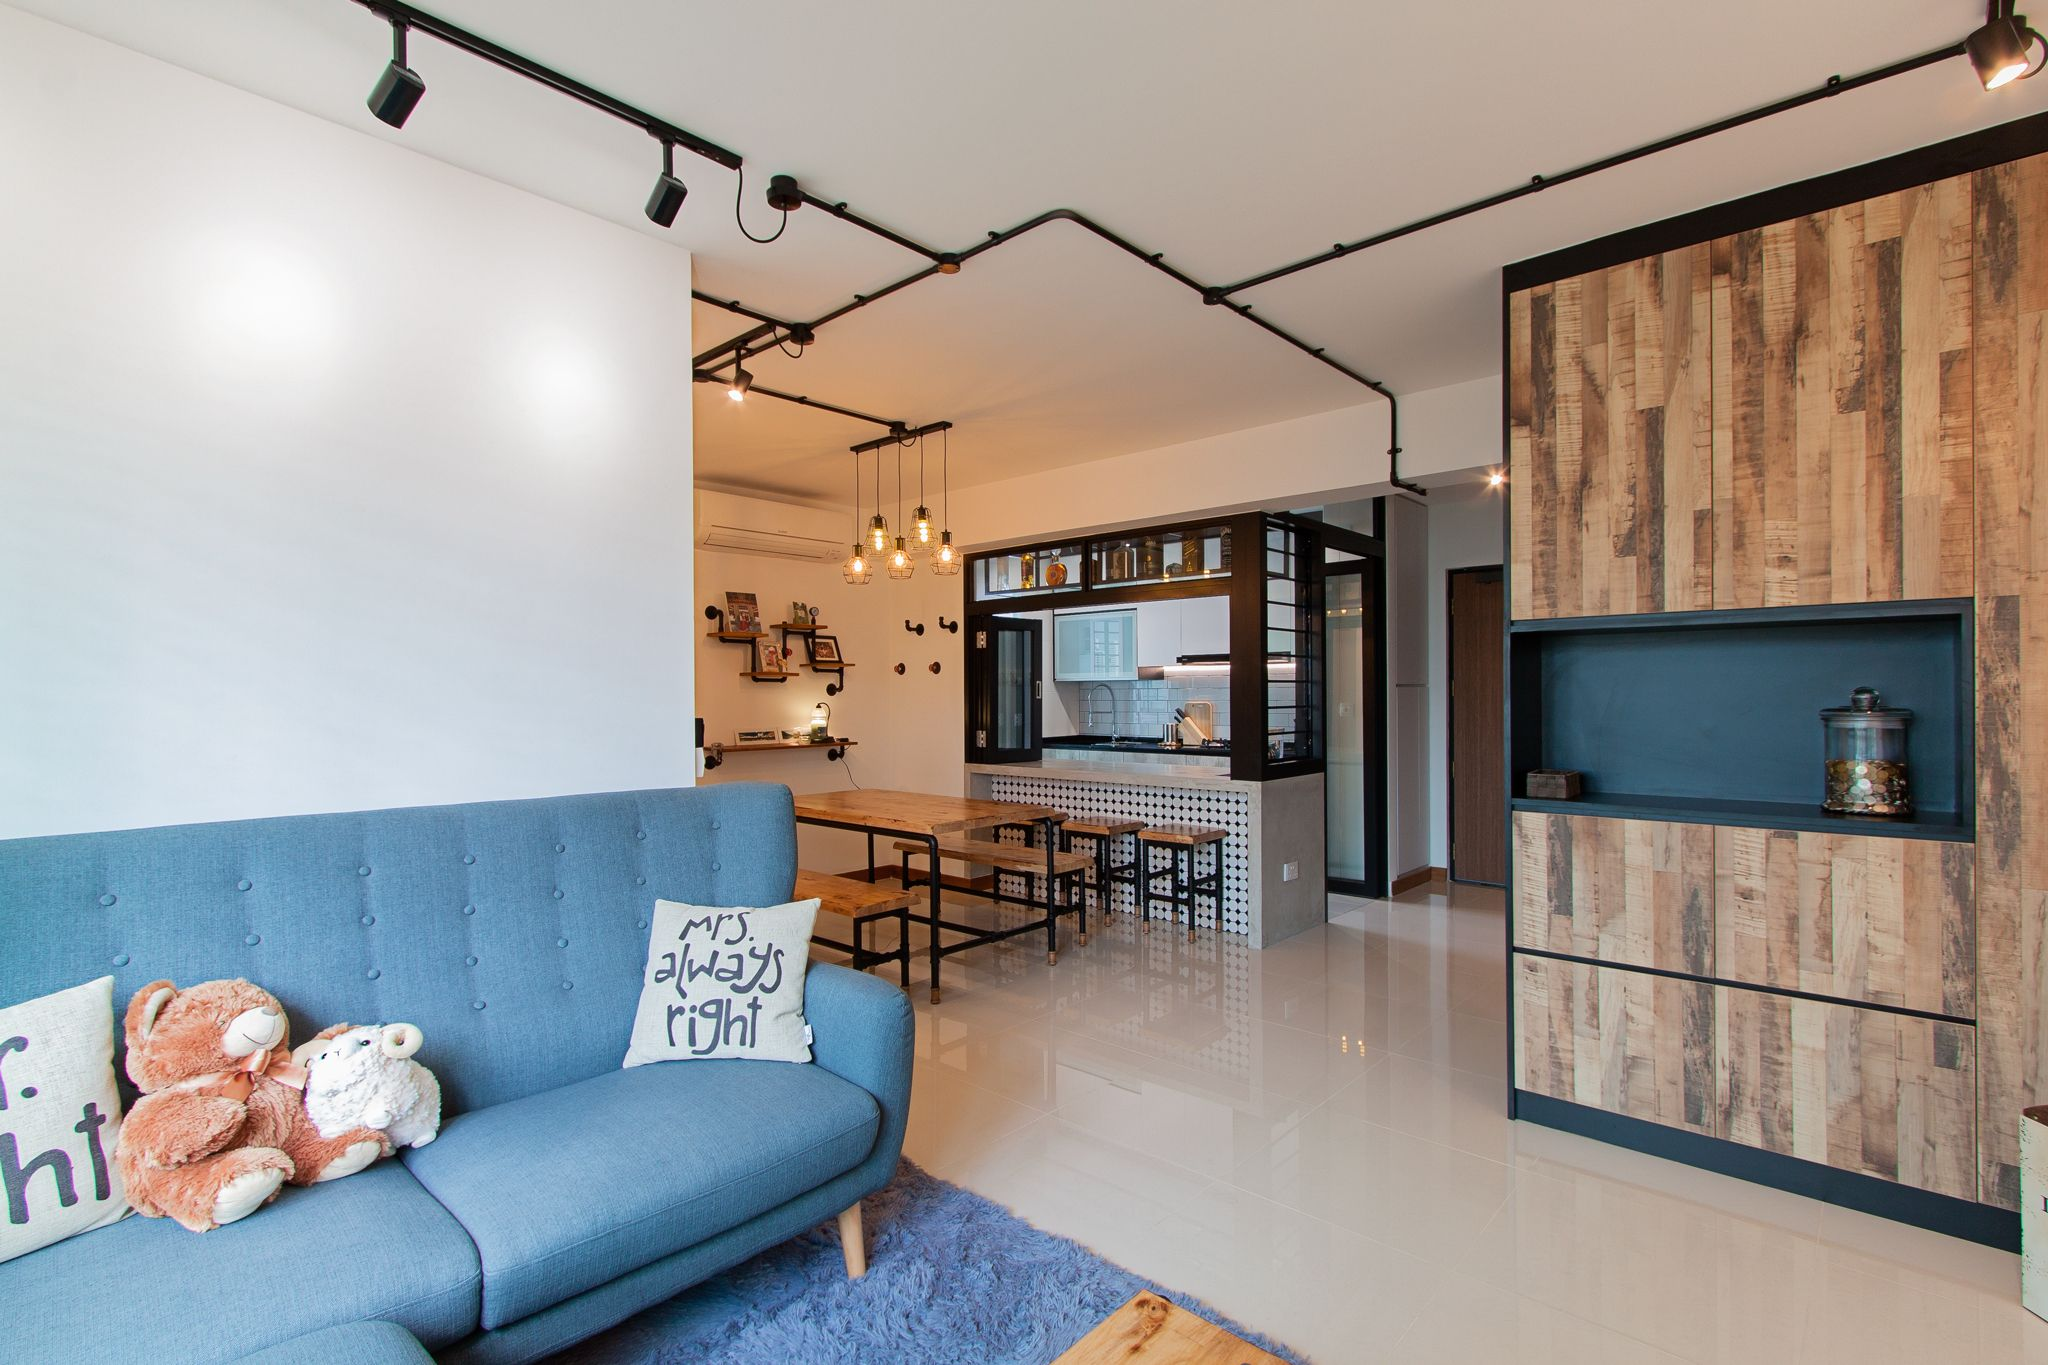 HDB 4-Room Standard Flat. House is designed under Scandinavian theme. Highlight of the house is the open concept walk-in wardrobe that many dream of. The open kitchen with bar top bench and stools …